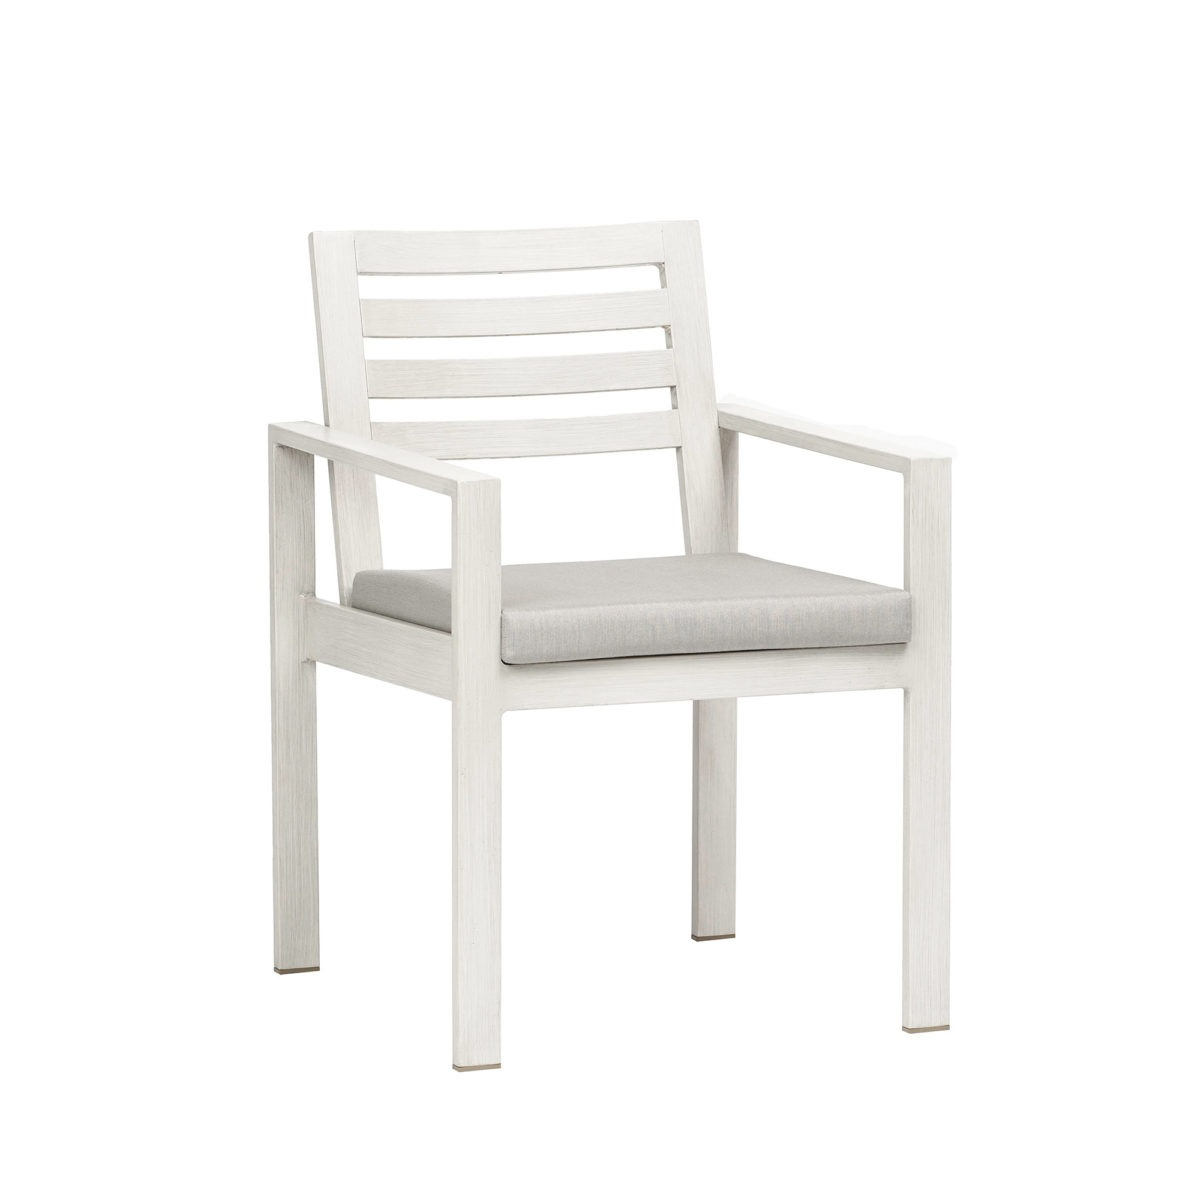 The Park Lane dining arm chair.